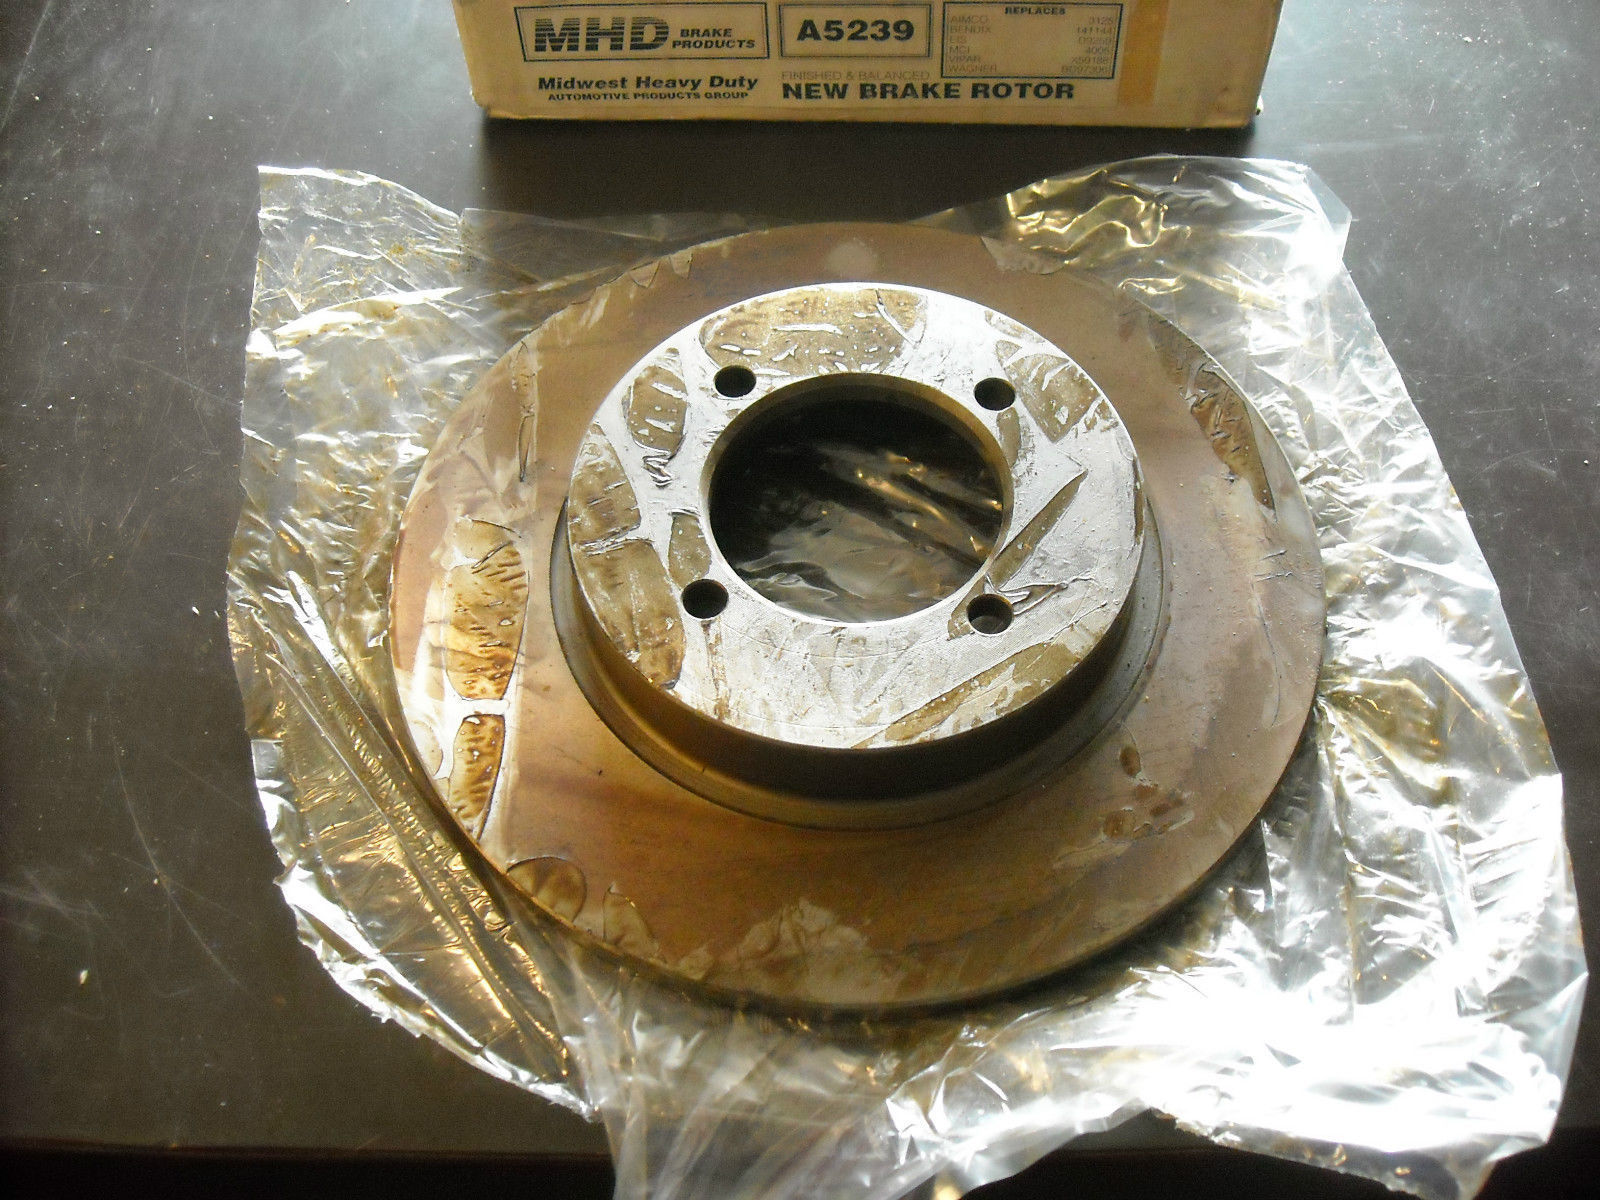 Primary image for Nissan Brake Rotor MHD #A5239, new (fits 200SX, 510, 610, 710, B210, 210)